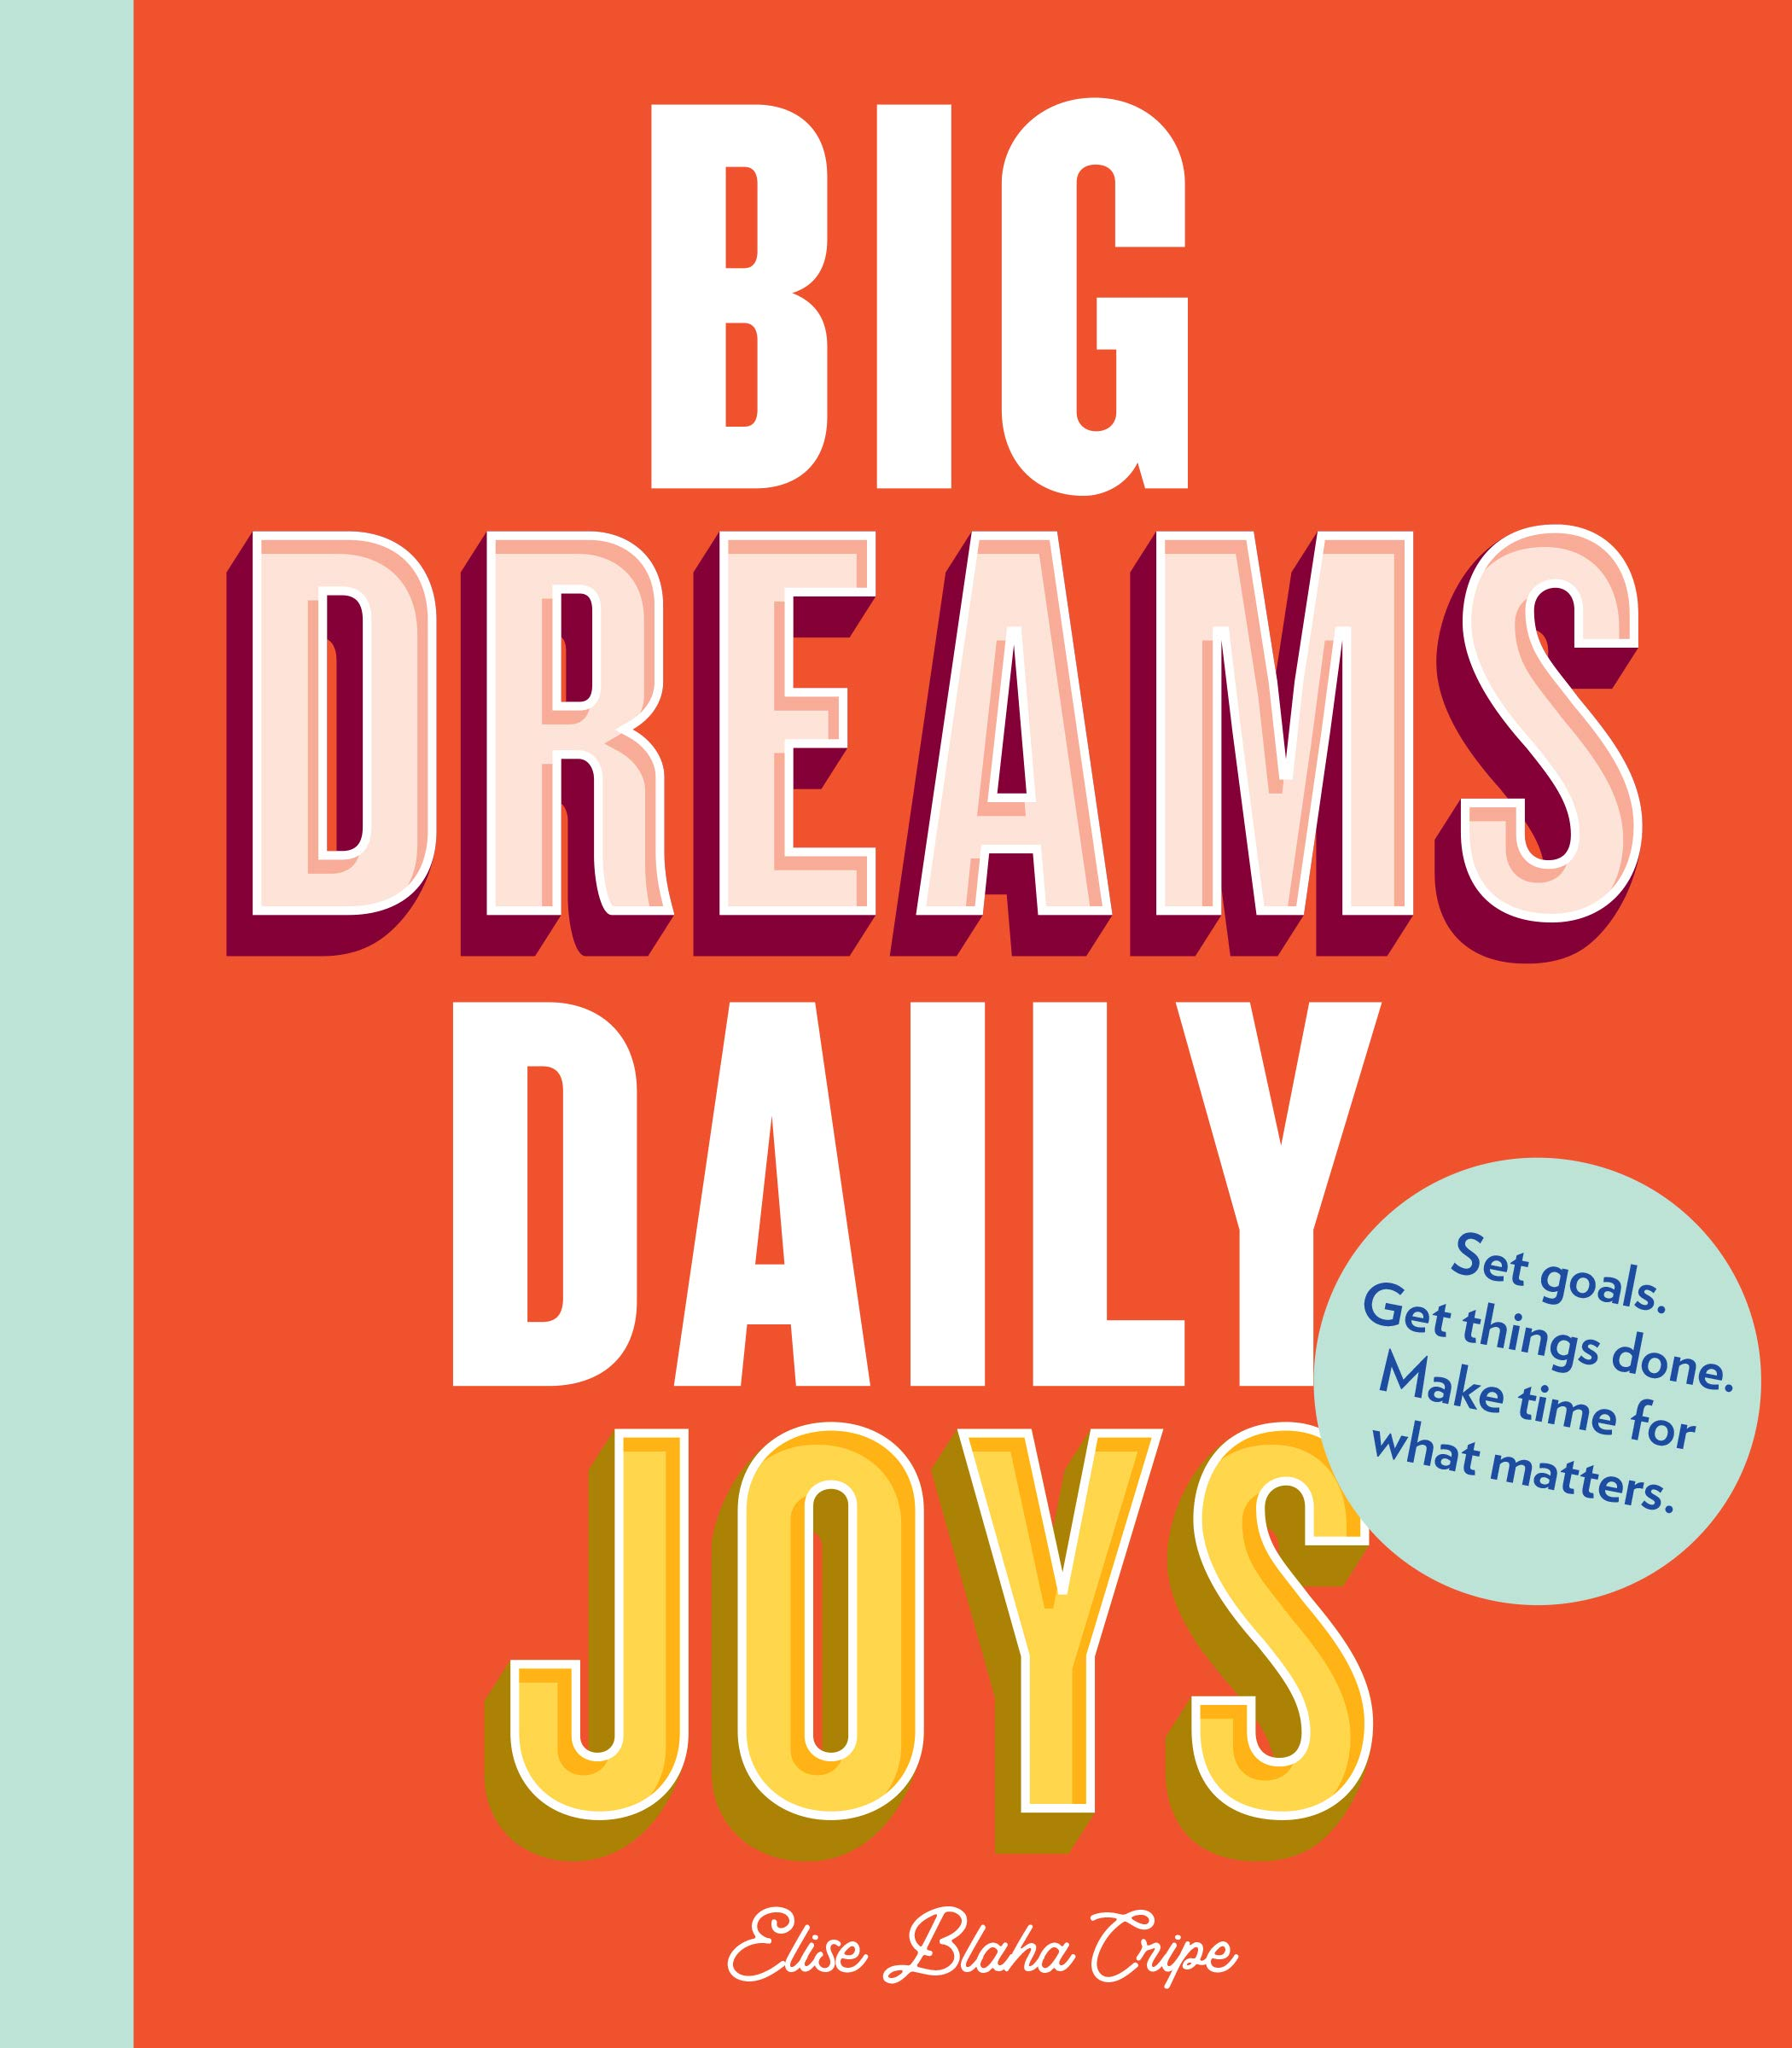 Big Dreams, Daily Joys: Set goals. Get things done. Make time for what matters. (Creative Productivity and Goal Setting…